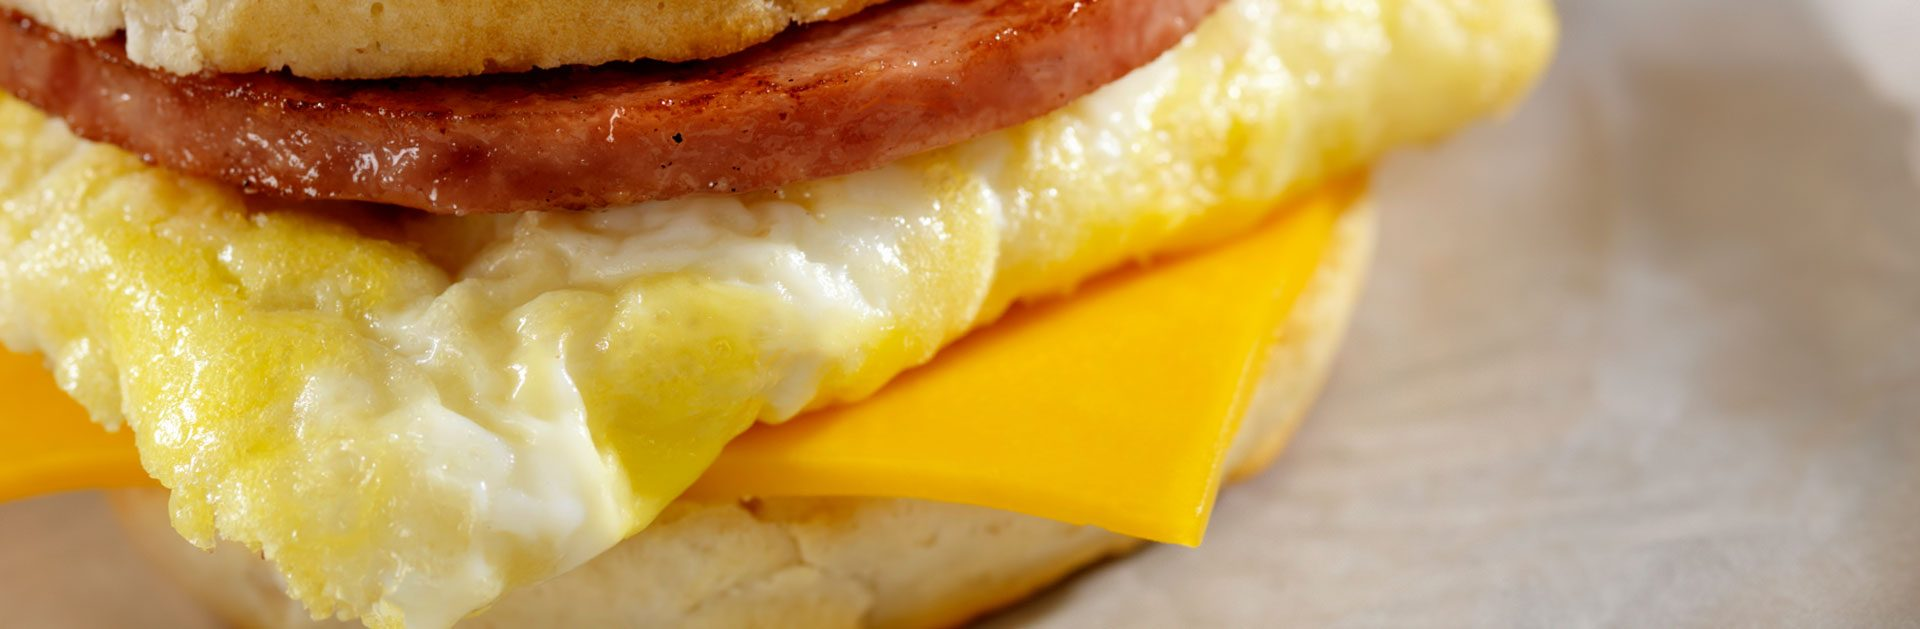 Ham, egg and cheese biscuit sandwich